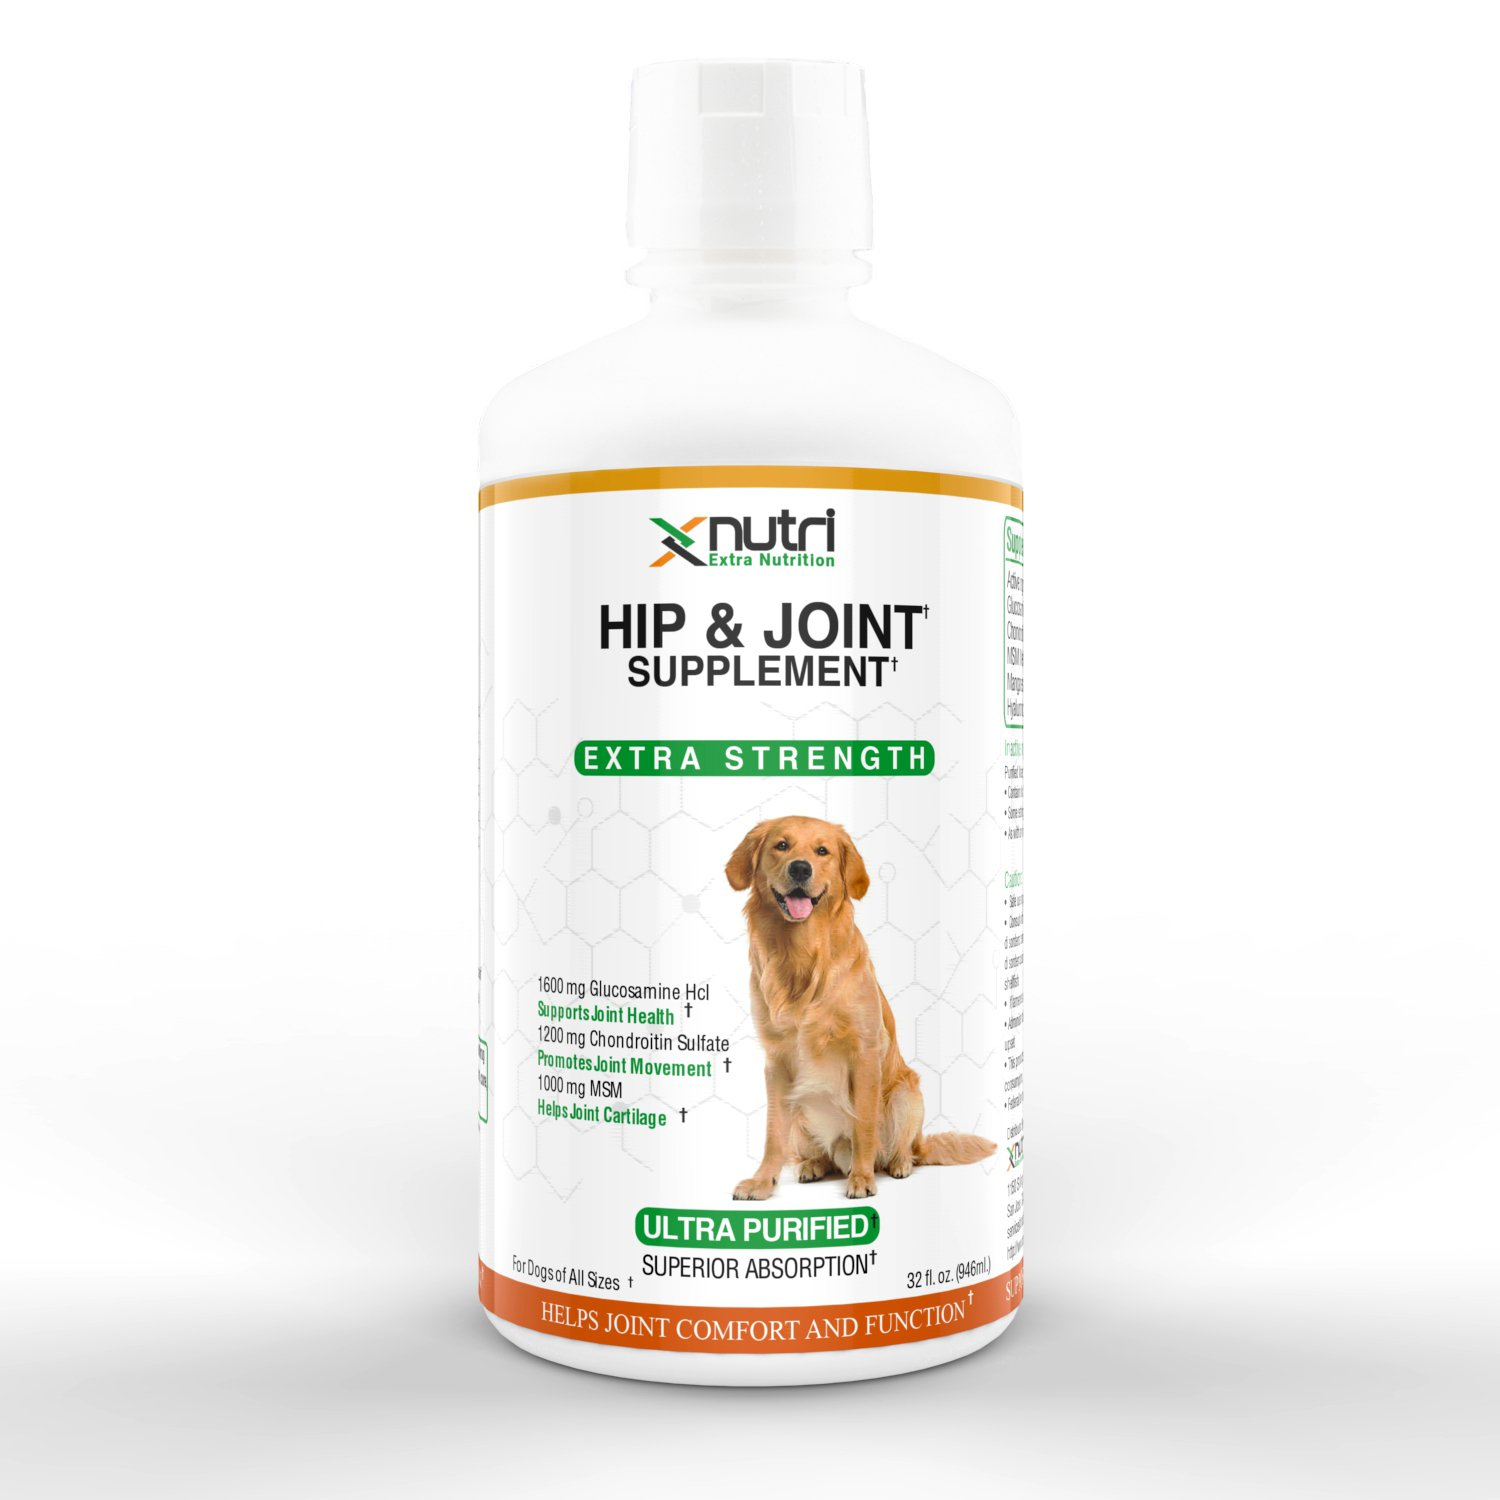 XNutri - Hip & Joint Supplement - For Dogs of All Sizes - Premium Liquid Glucosamine with Chondroitin, MSM and Hyaluronic Acid - 32 fl. oz (946 ml)